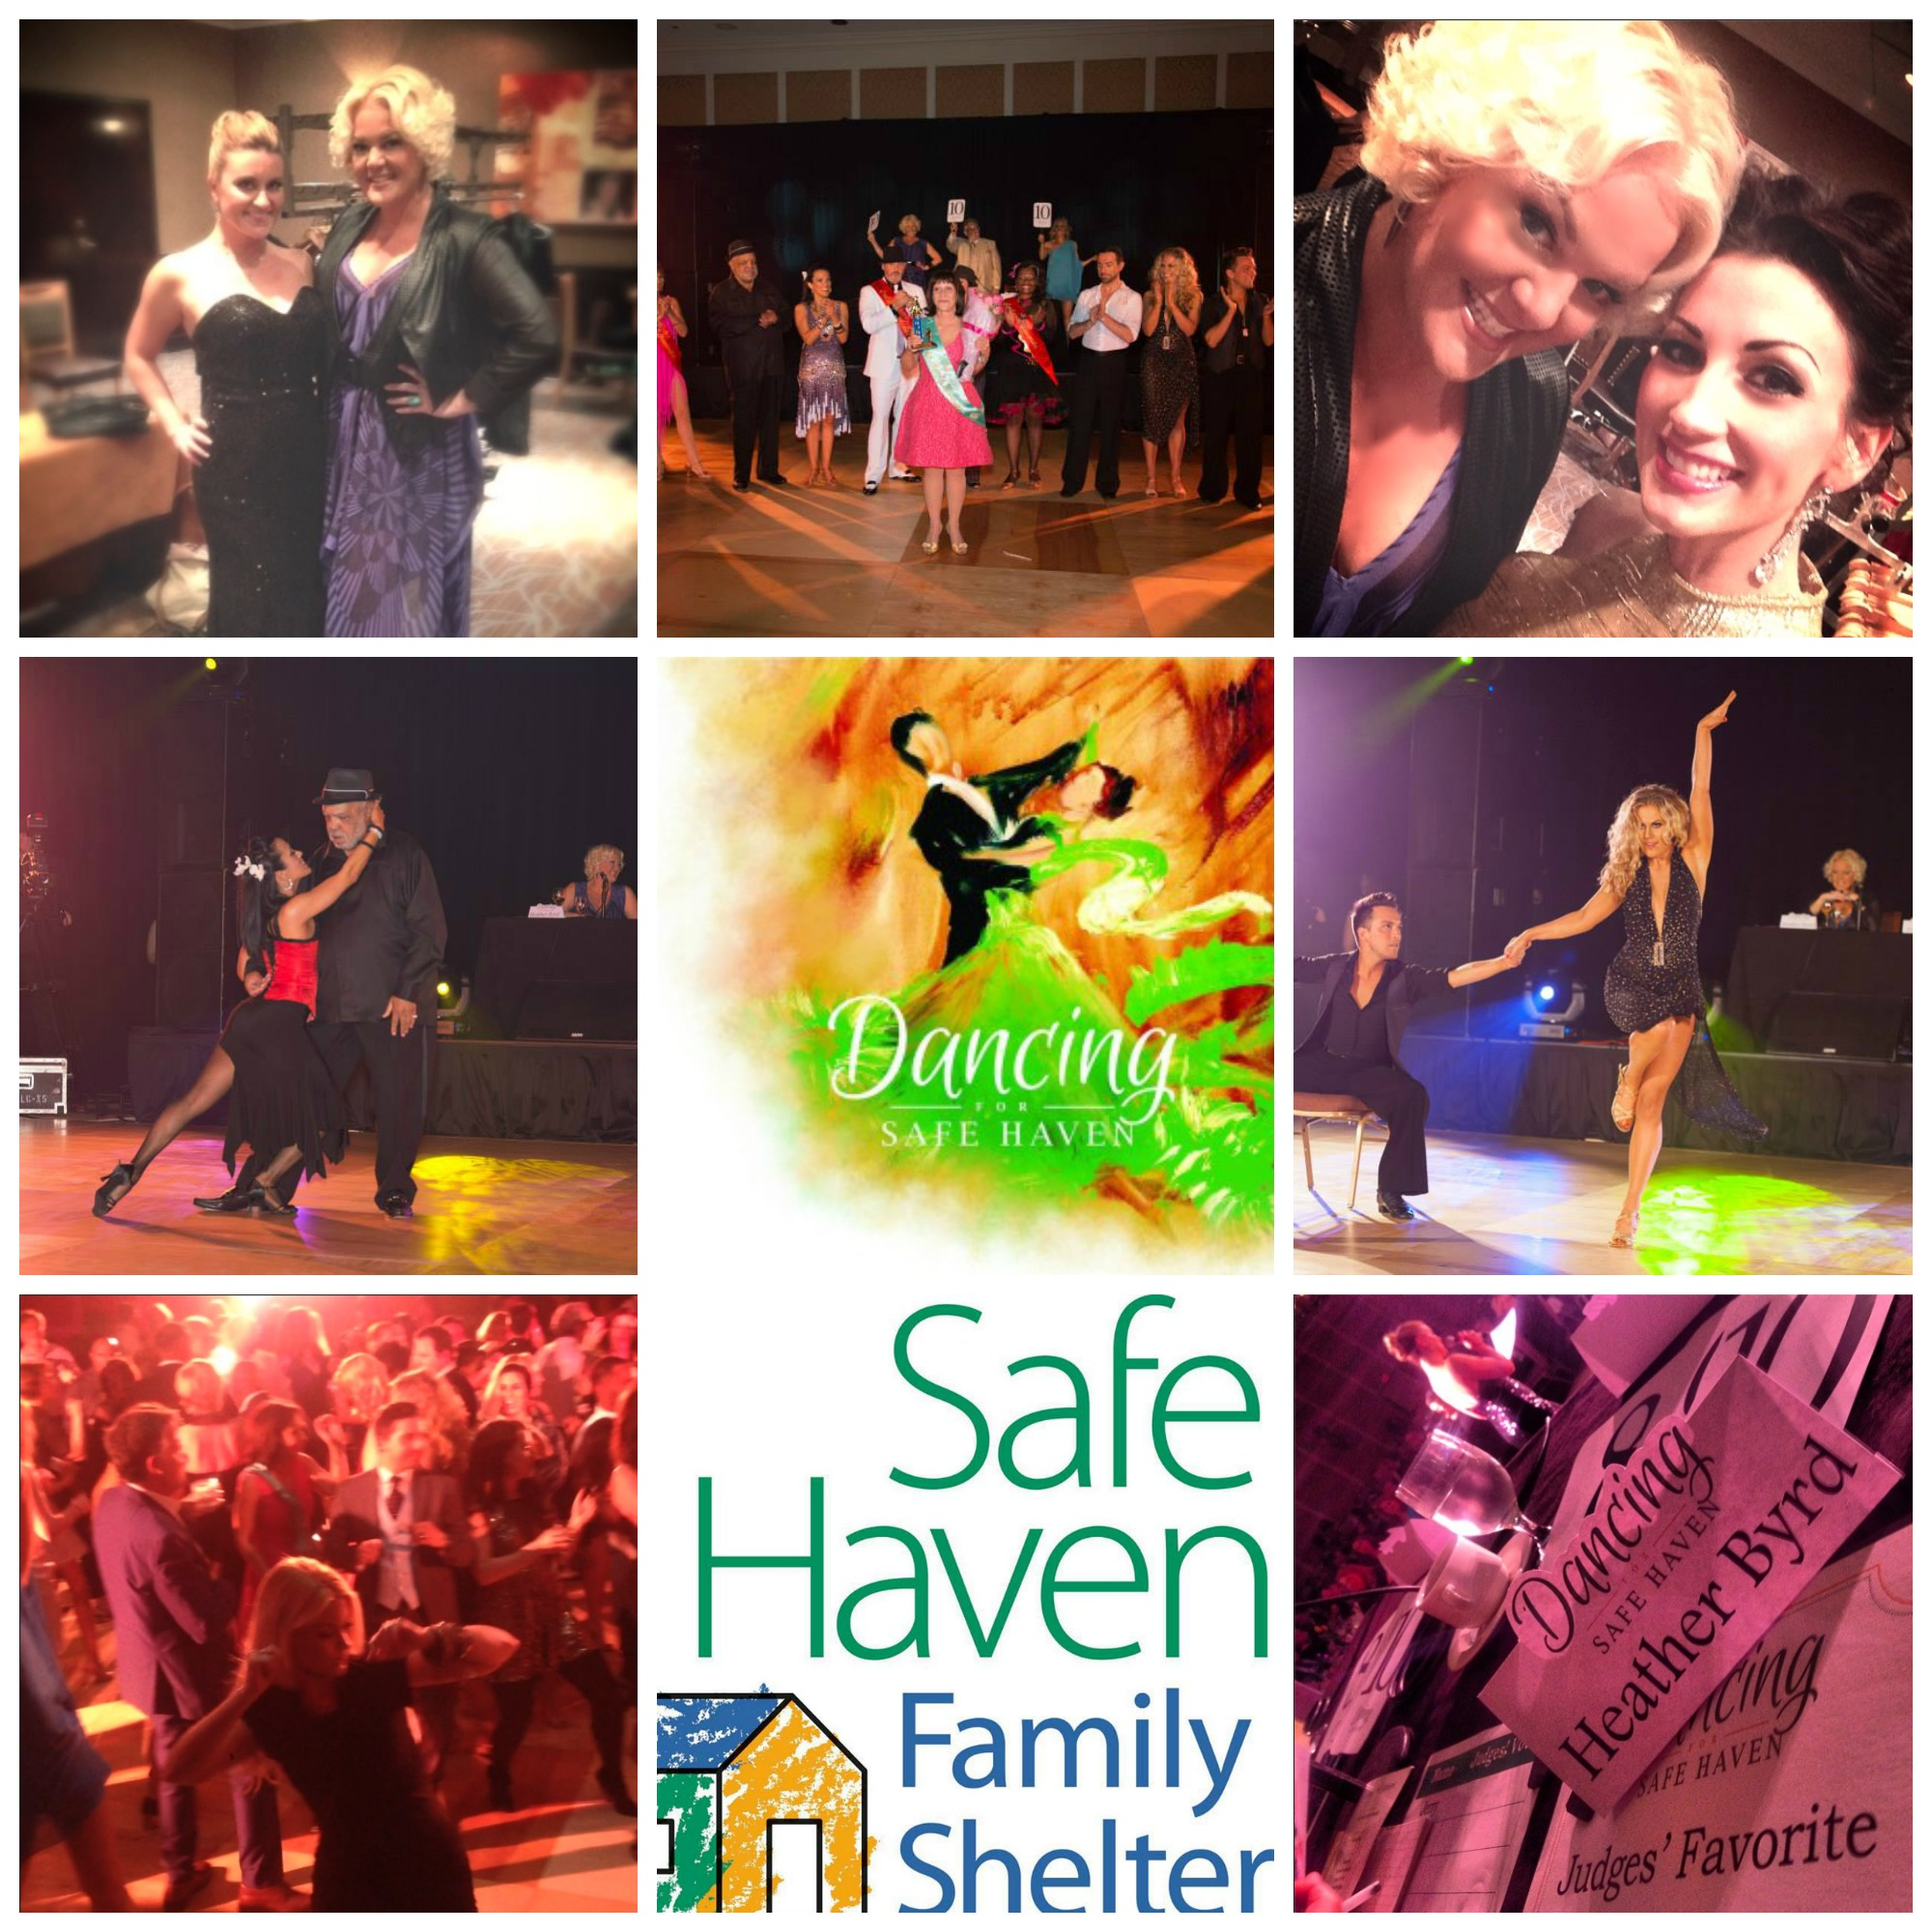 APRIL 2014 - HEATHER JUDGED THE DANCING FOR SAFE HAVEN BENEFIT T LOEW'S VANDERBILT PLAZA FOR THE 5TH YEAR IN A ROW WITH STACIE KINDER, HEAD COACH OF THE TITANS CHEERLEADERS AND TED CLAYTON, SOCIAL EDITOR OF NASHVILLE ARTS MAGAZINE. THE EVENT RAISED OVER $200,000 FOR HOMELESS FAMILIES IN NASHVILLE.